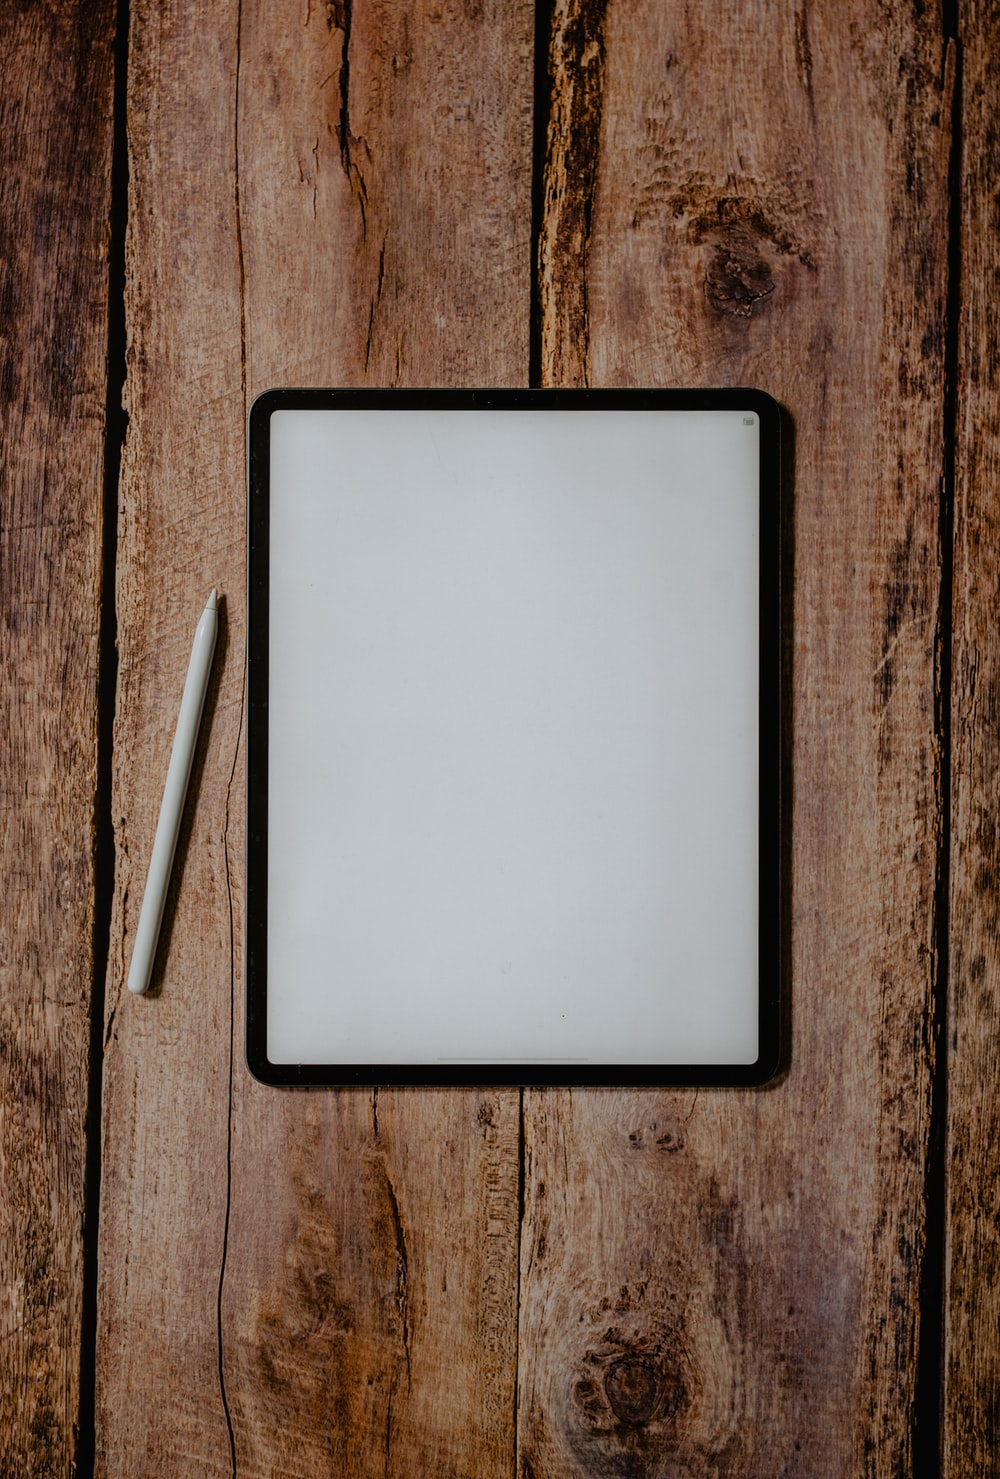 white and black board on brown wooden surface